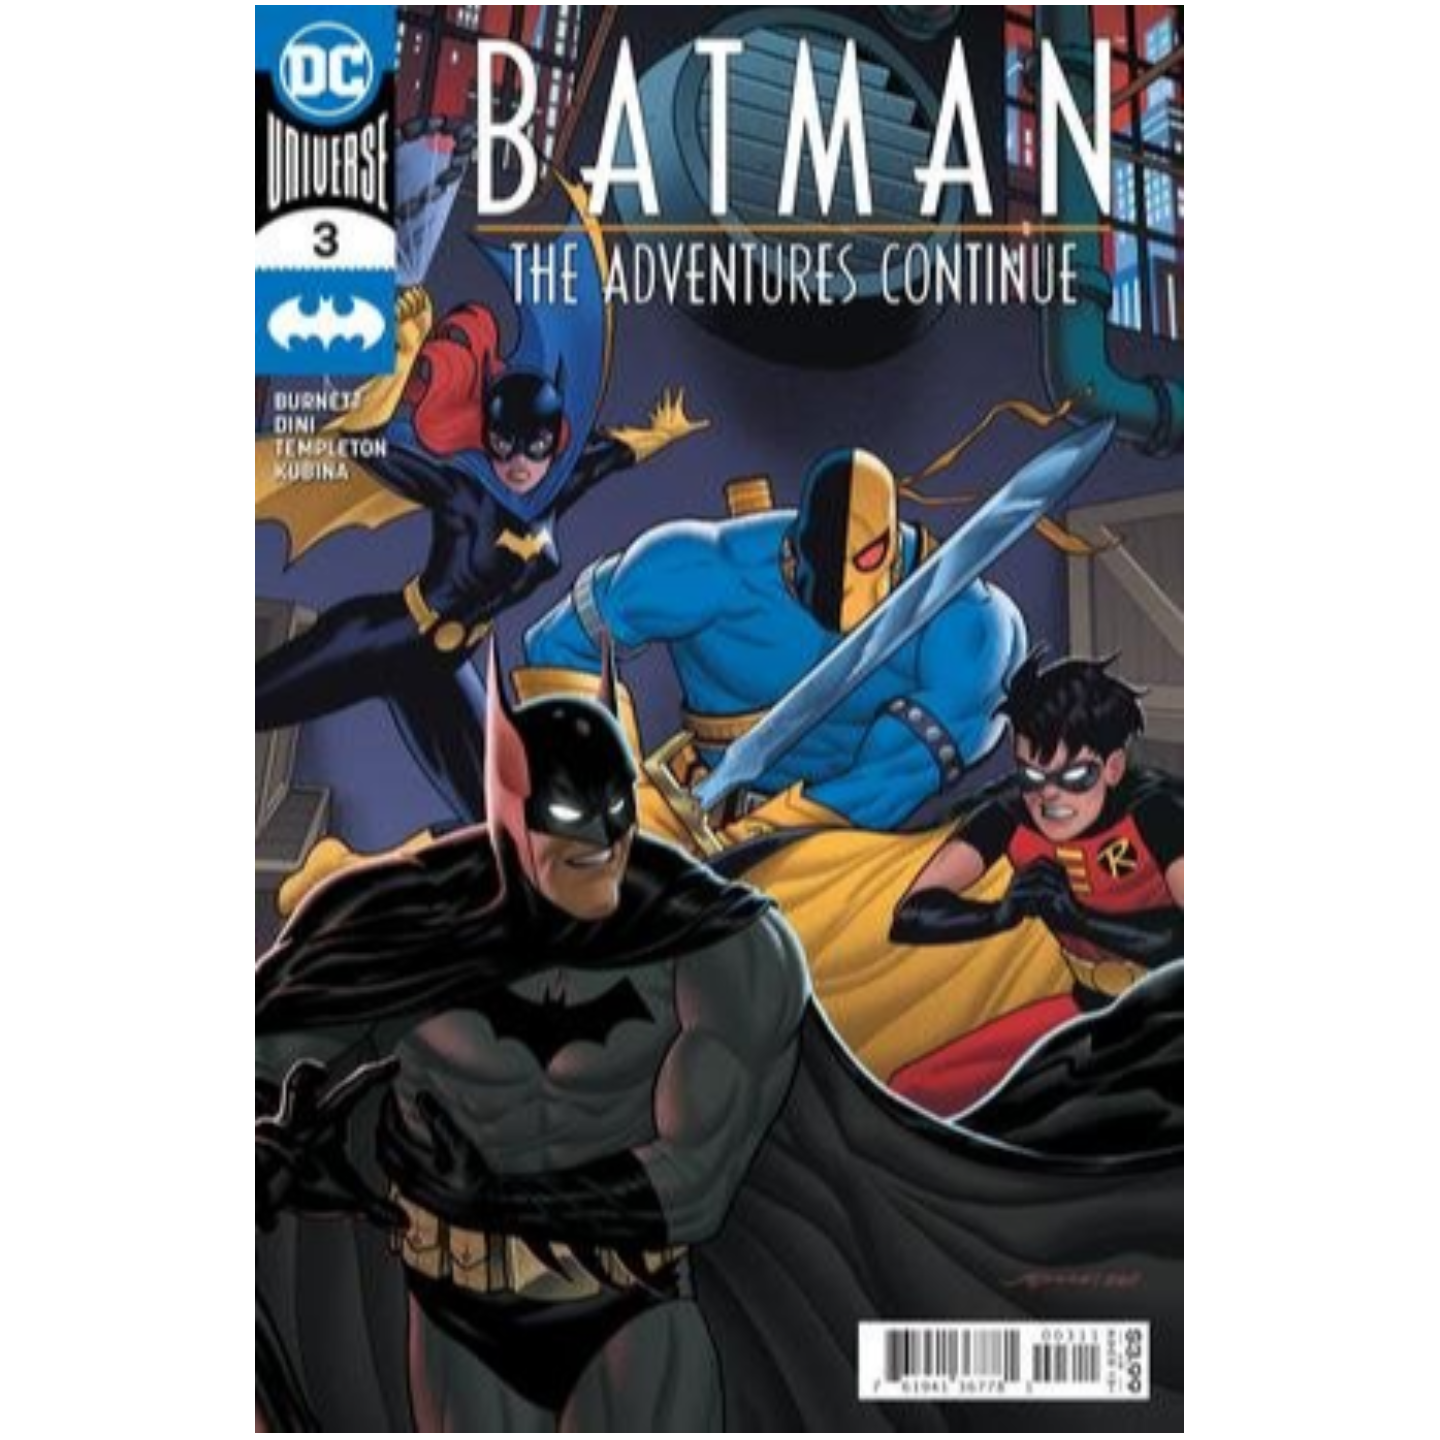 BATMAN THE ADVENTURES CONTINUE 3 OF 6 CVR A JOE QUINONES